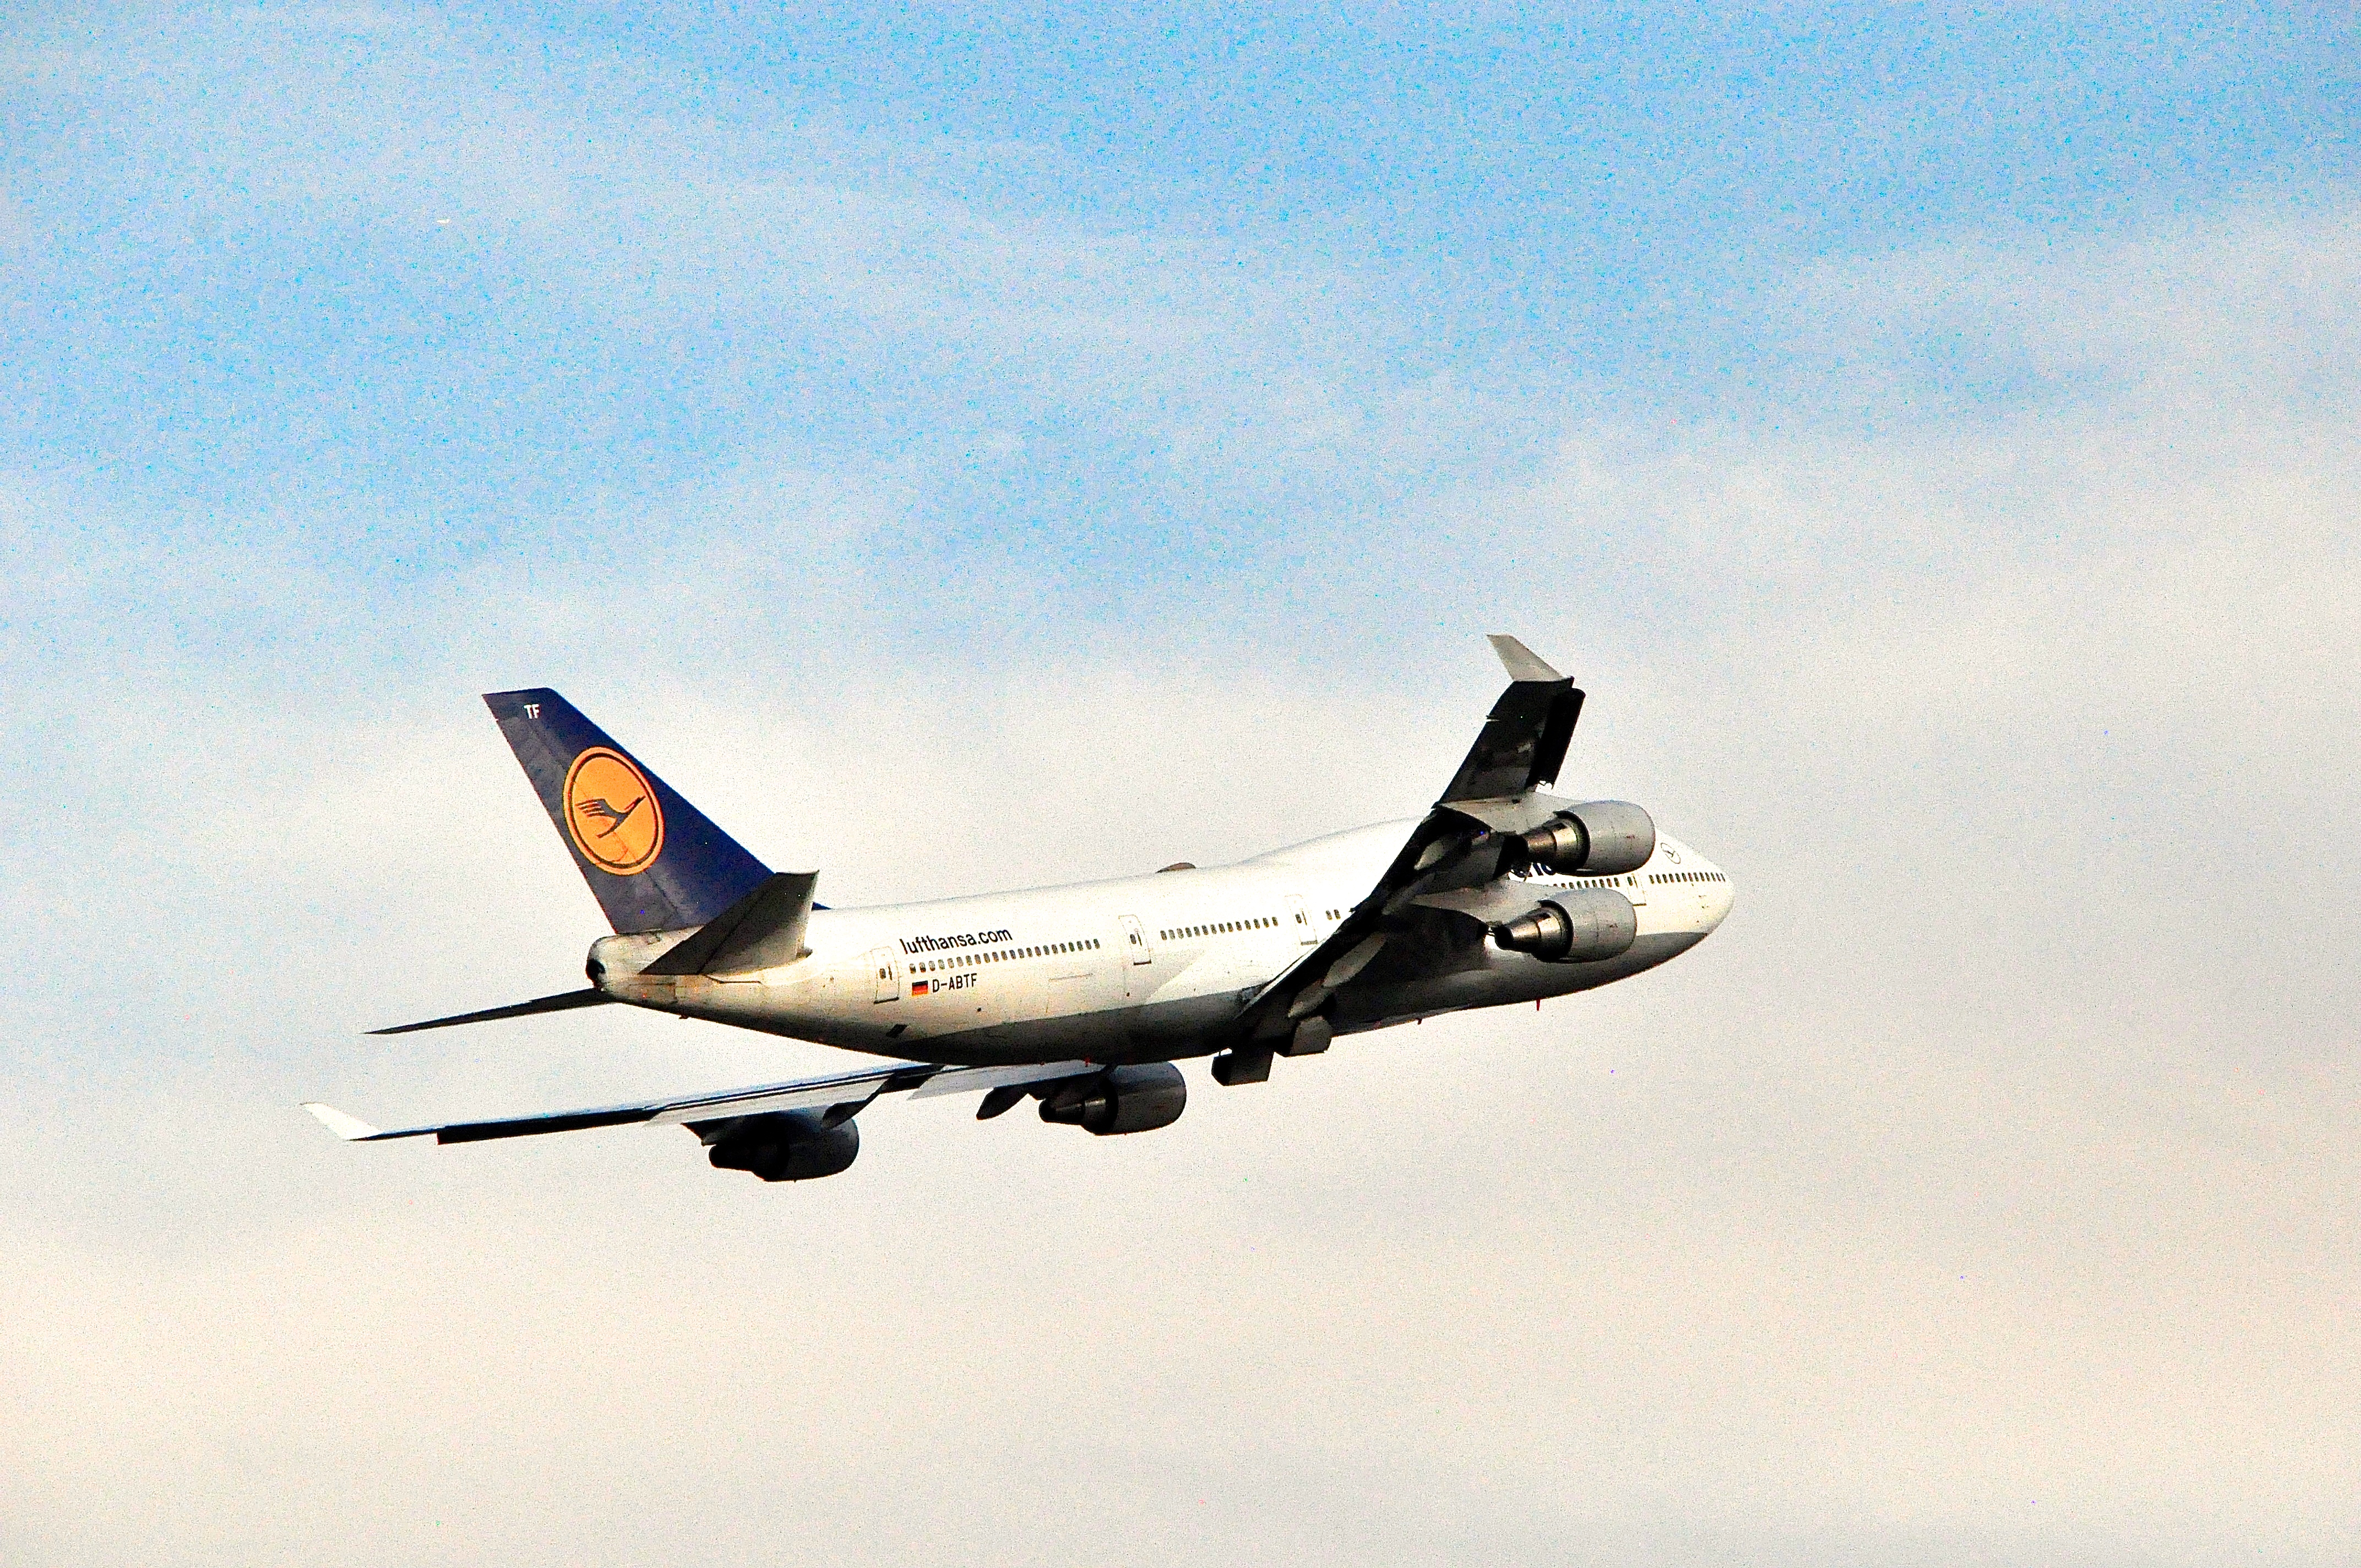 The 747 is the world's most recognizable aircraft